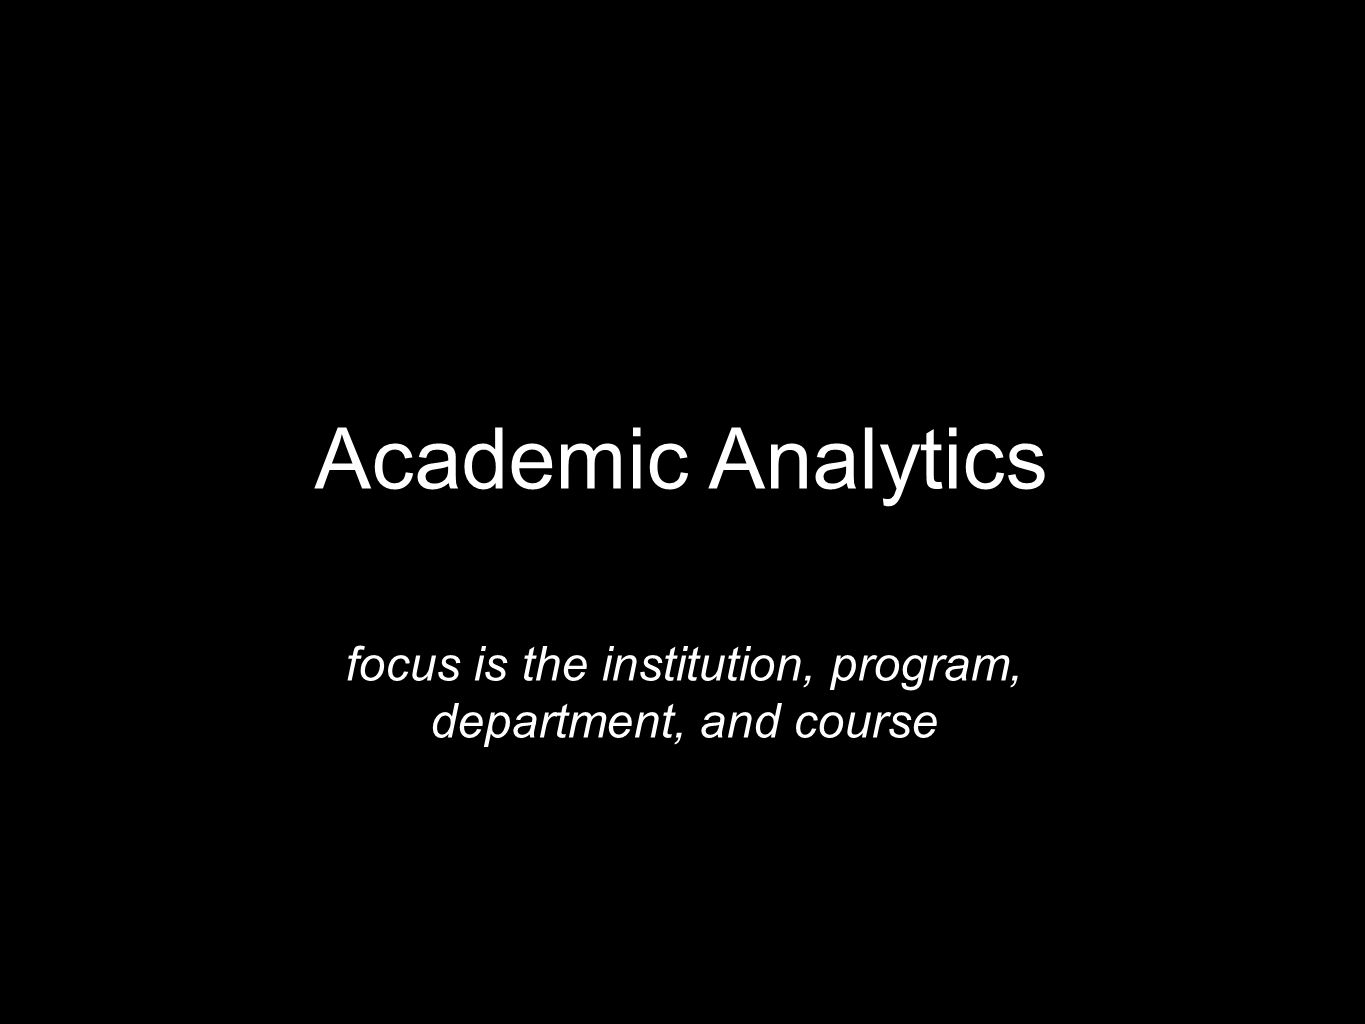 Academic Analytics focus is the institution, program, department, and course